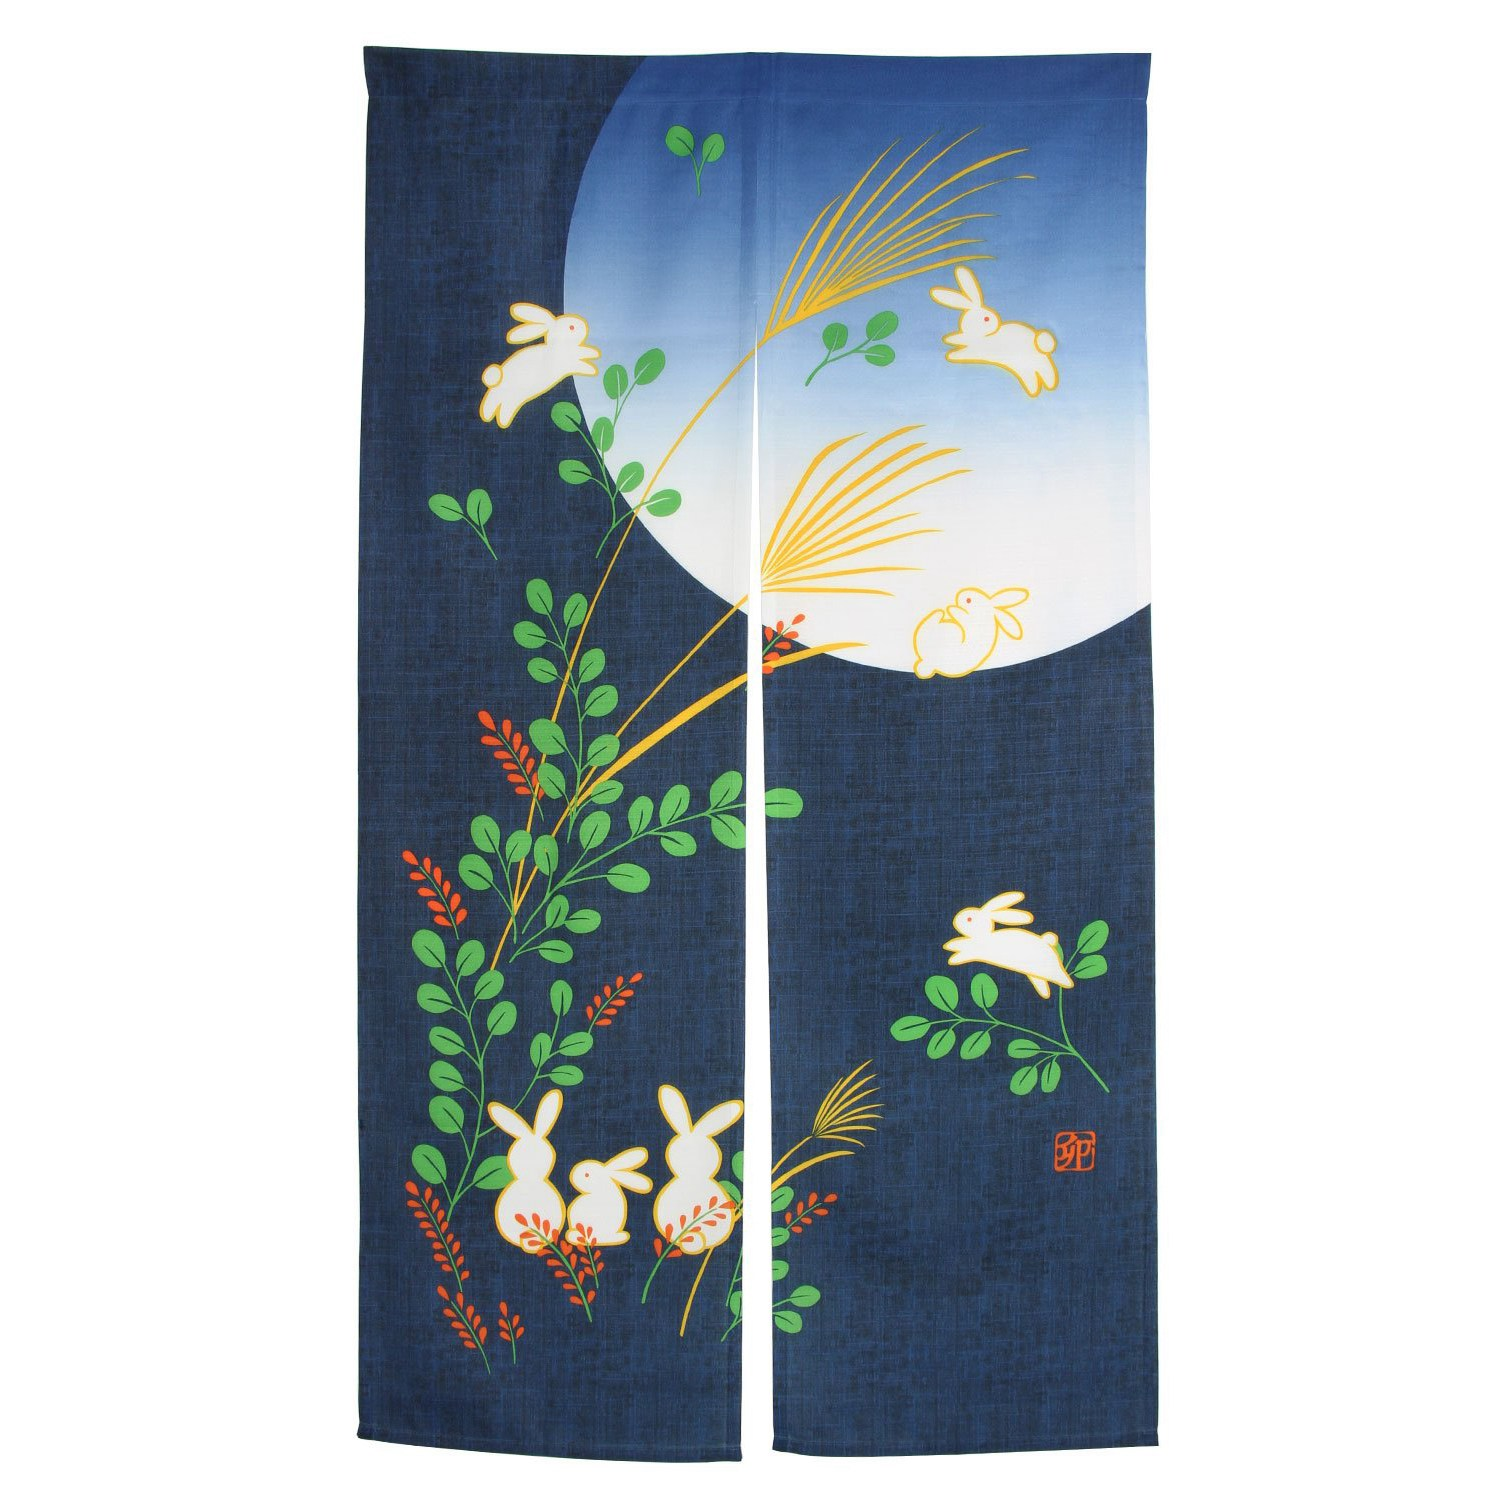 Promotion! Japanese Doorway Curtain Noren Rabbit Under Moon For Home Decoration 85X150Cm